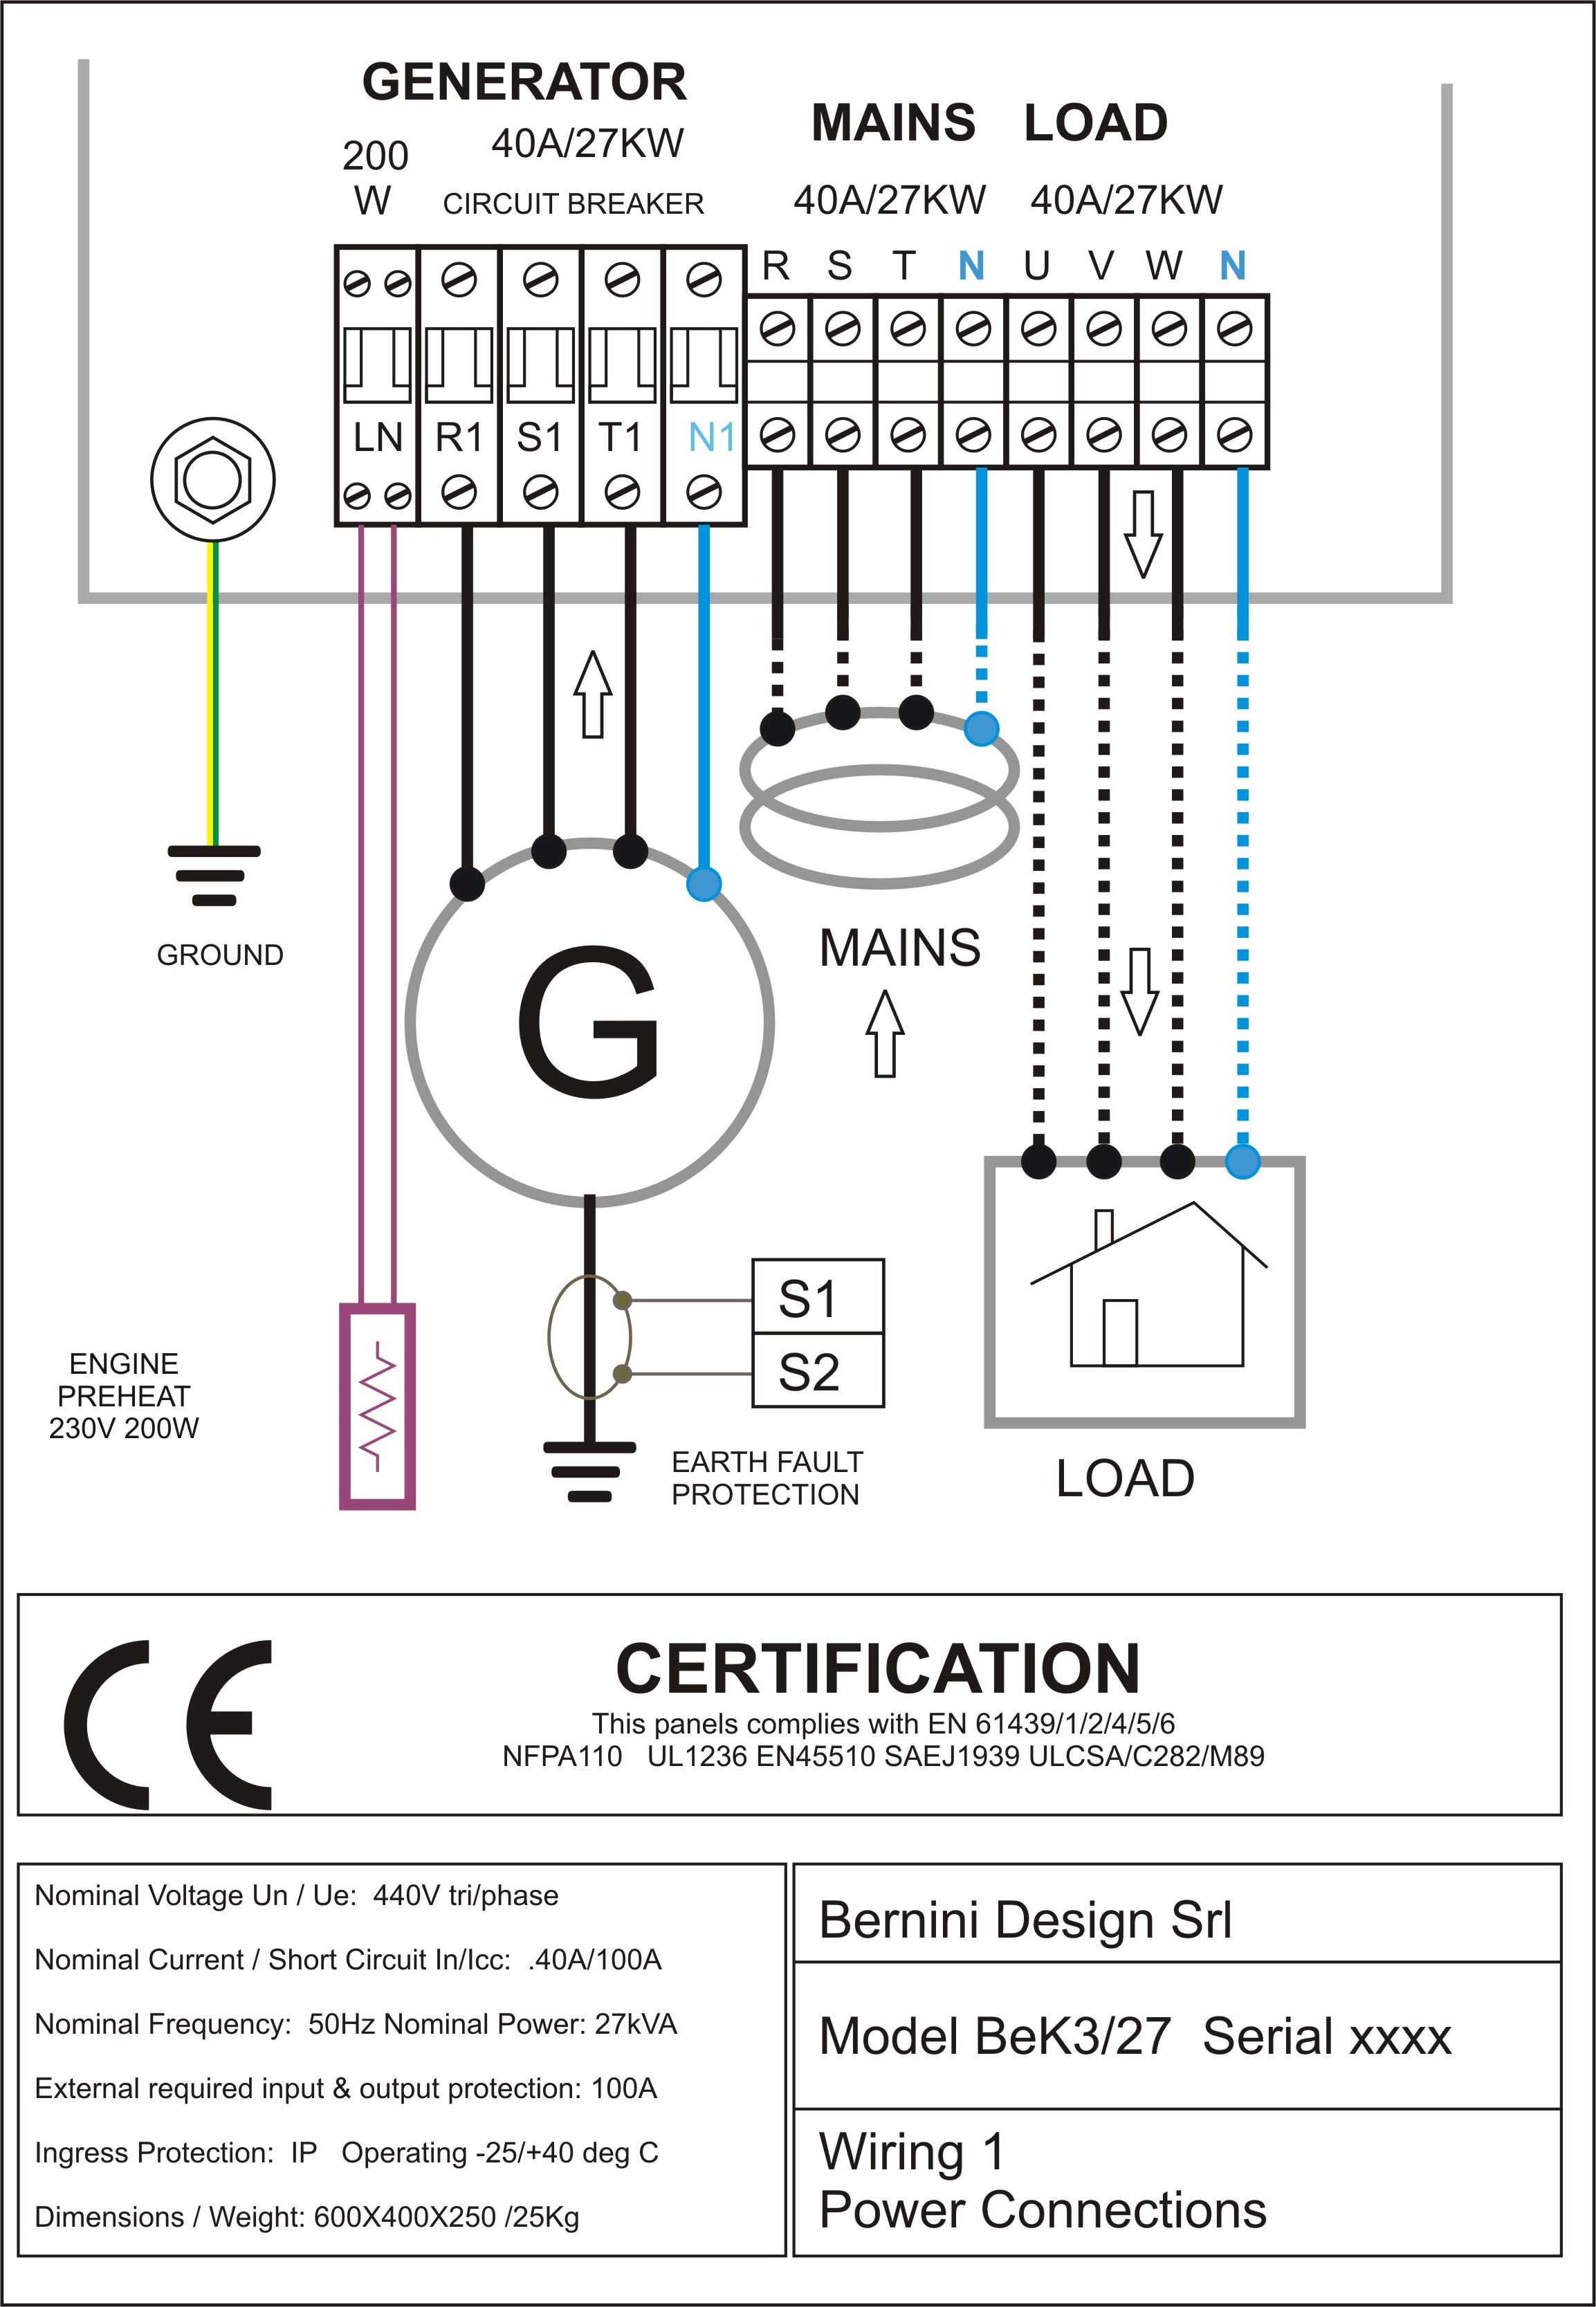 Diesel Generator Control Panel Wiring Diagram AC Connections1 automatic transfer switch wiring diagram free efcaviation com generac 200 amp transfer switch wiring diagram at bayanpartner.co